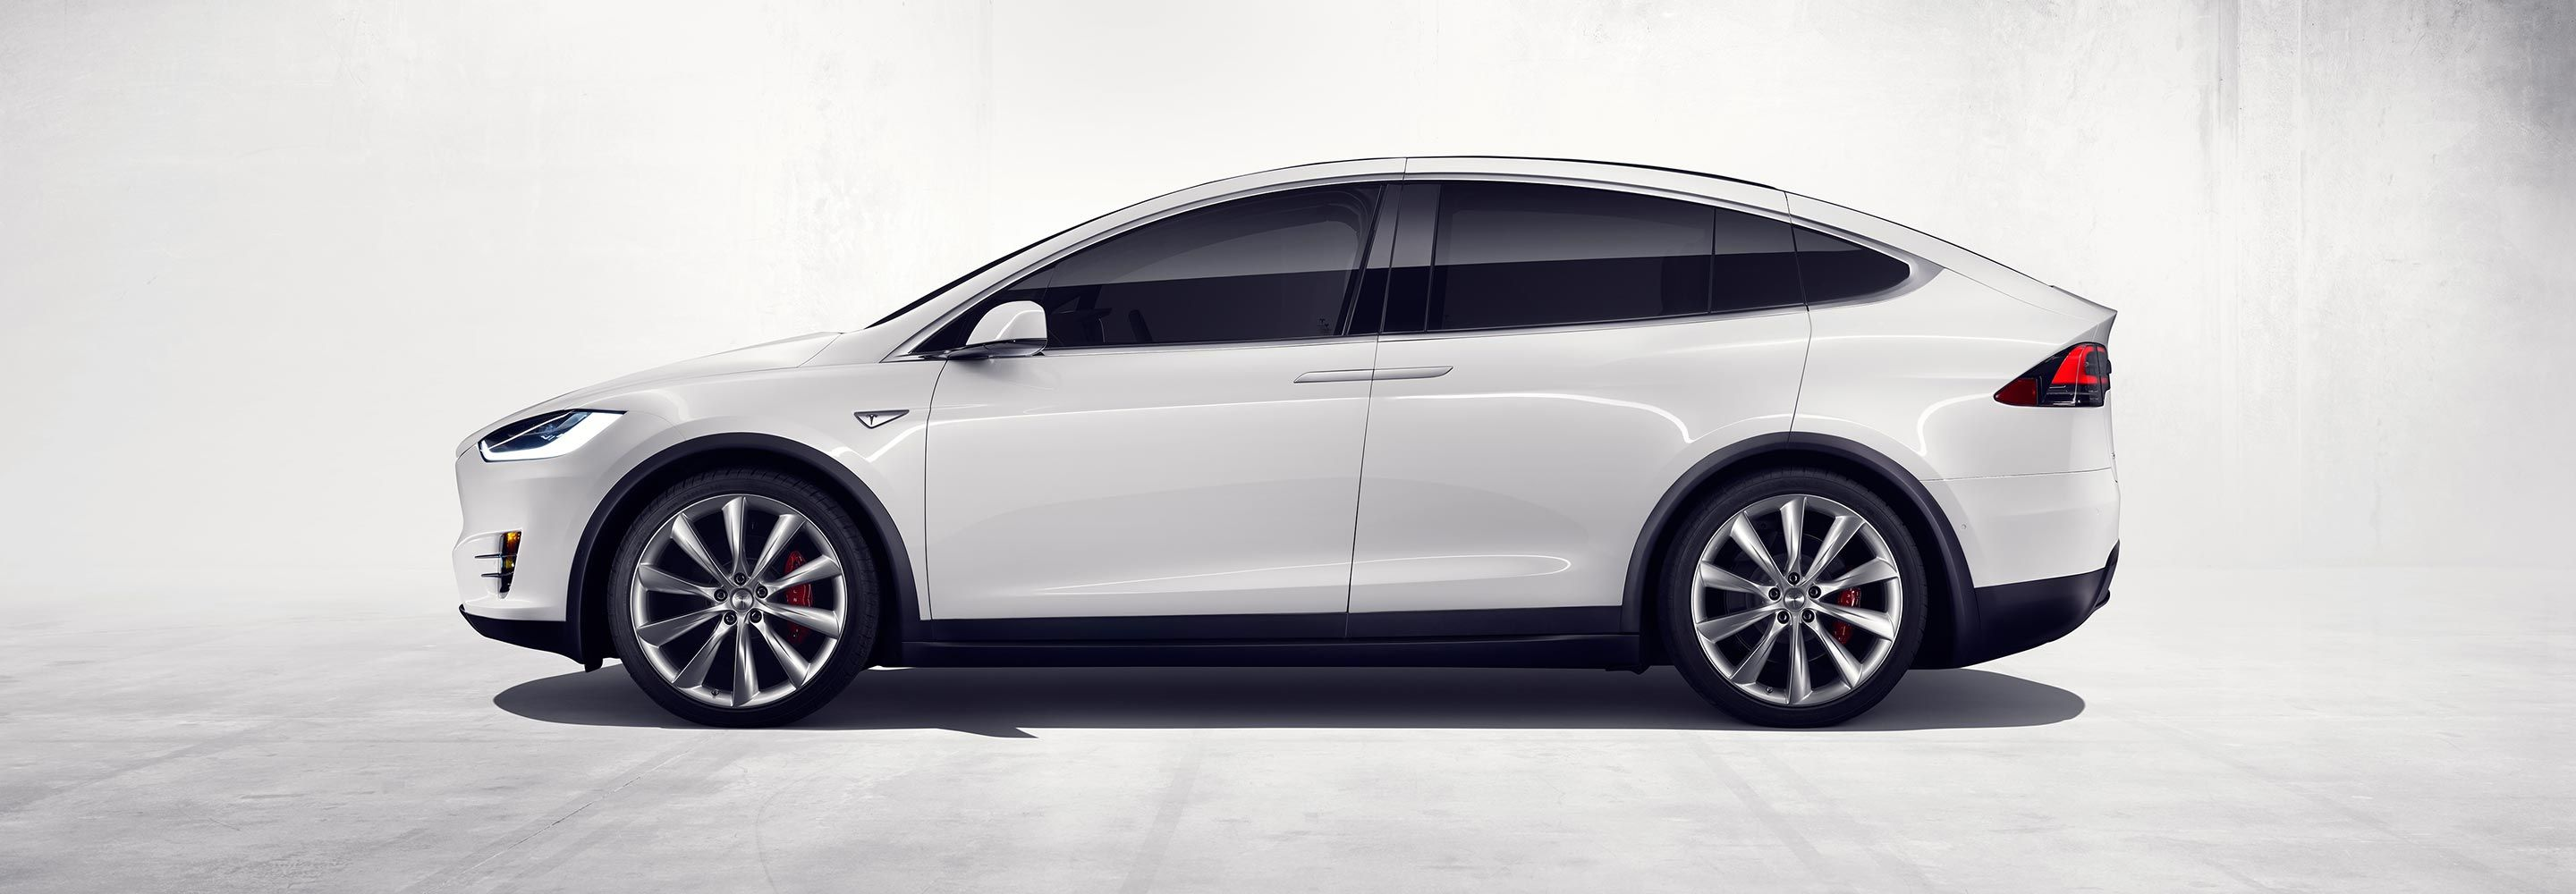 Design of car model - Tesla Model X Makes Grand Entrance Wows With Features Cf Blog